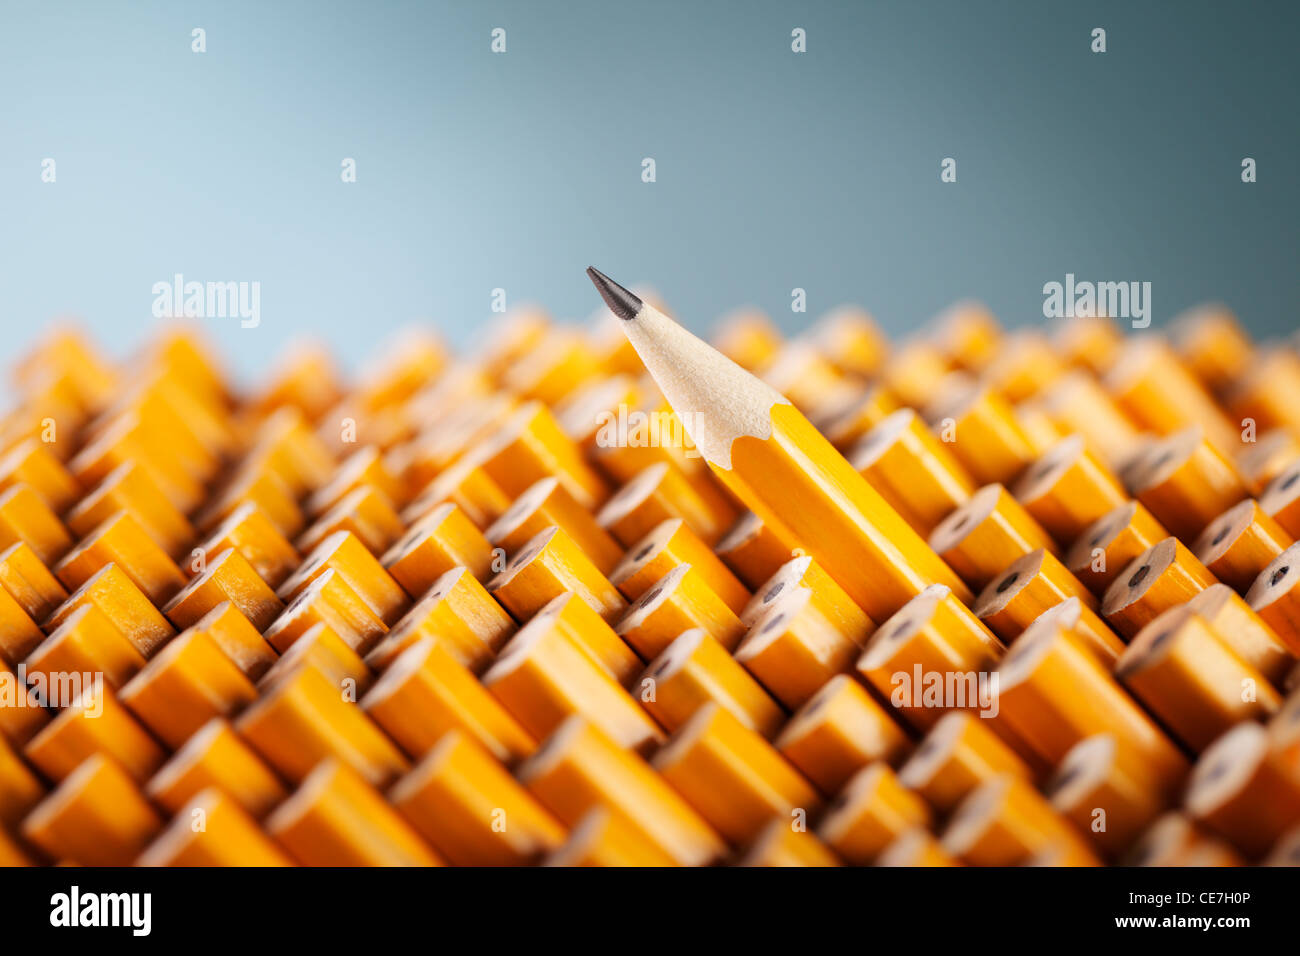 Sharpened pencil amongst other pencils. - Stock Image